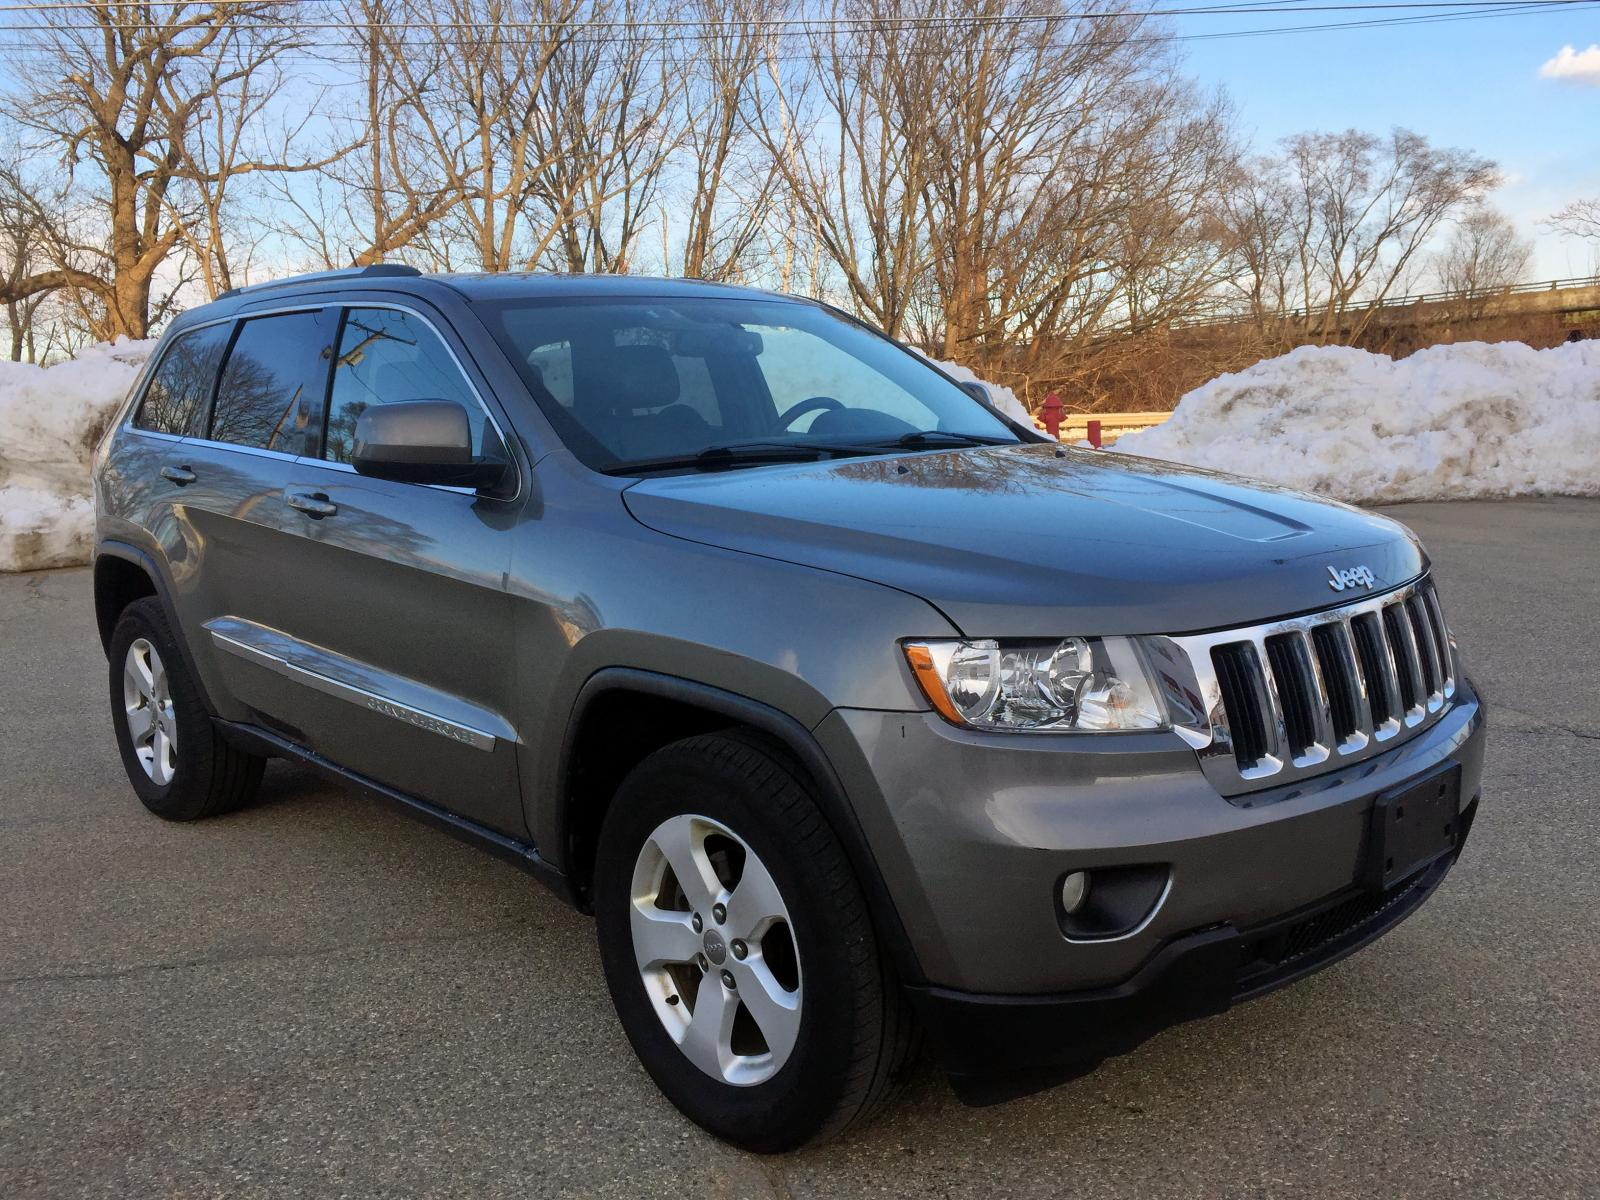 2012 Jeep Grand Cher 3.6L Left View